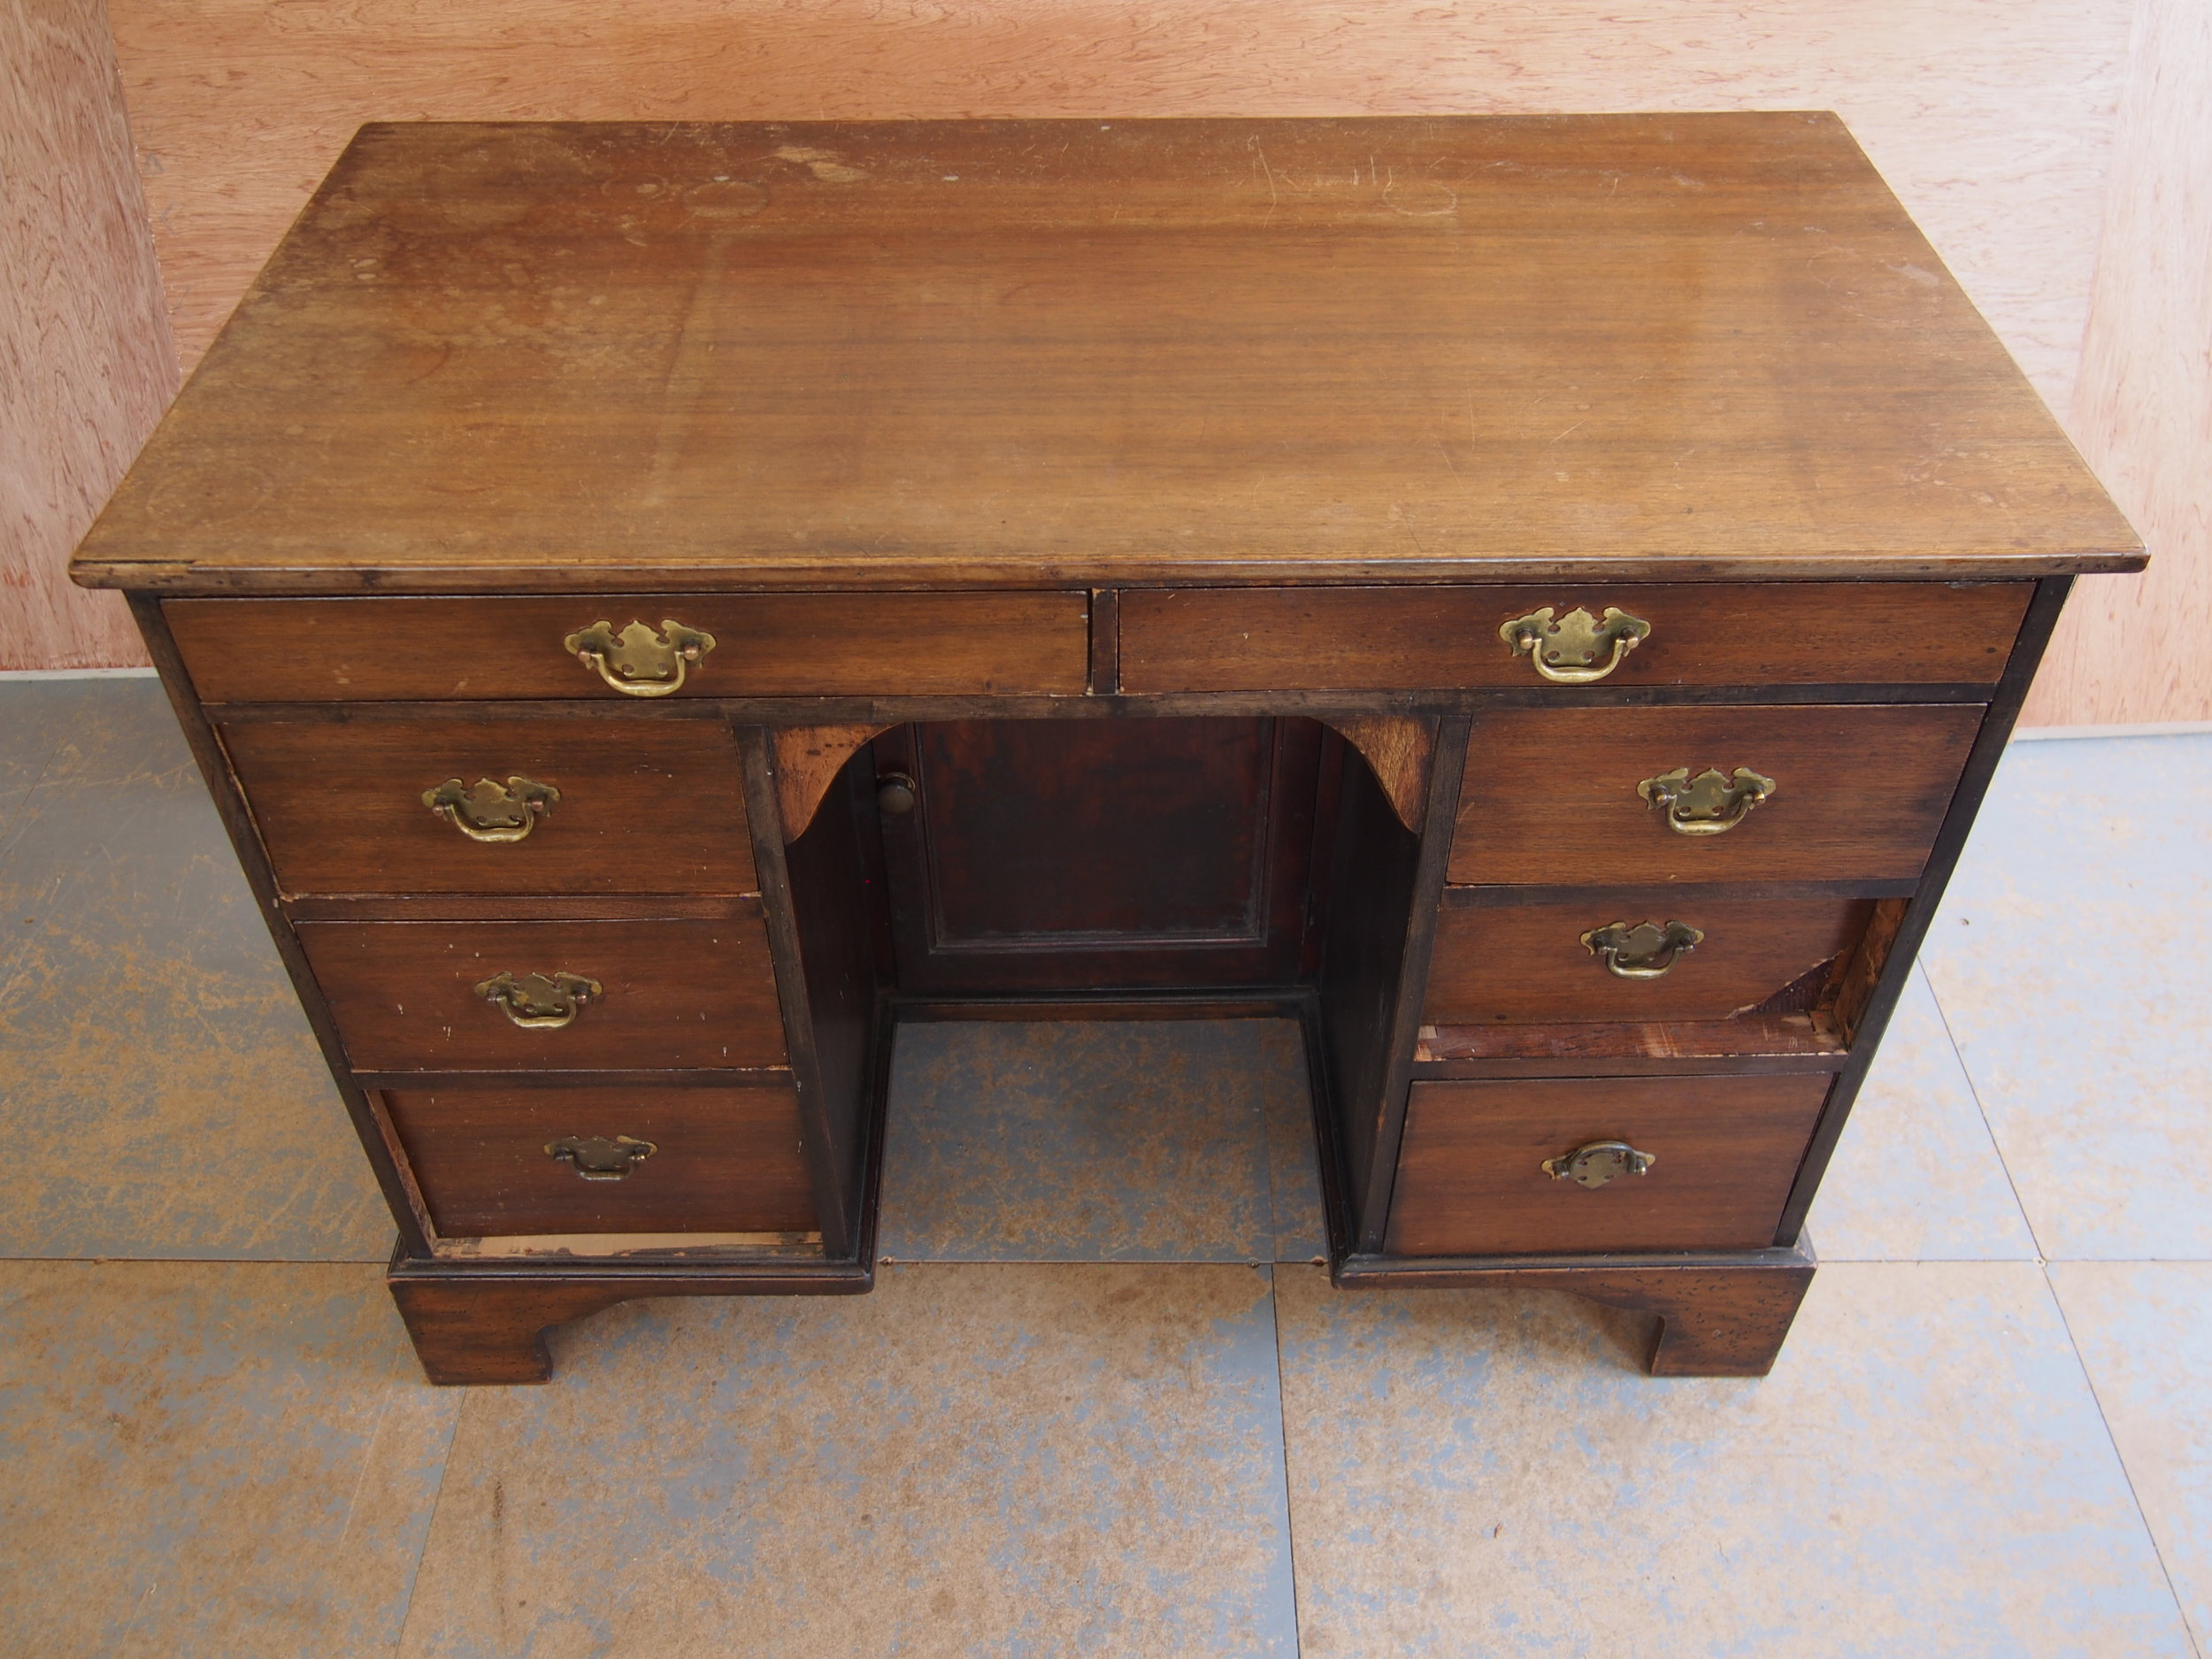 The Antique Walnut Desk was presented with several water marks, ink stains and scratches that needed to be removed. It was evident that several areas had broken and missing parts needed to be re made.